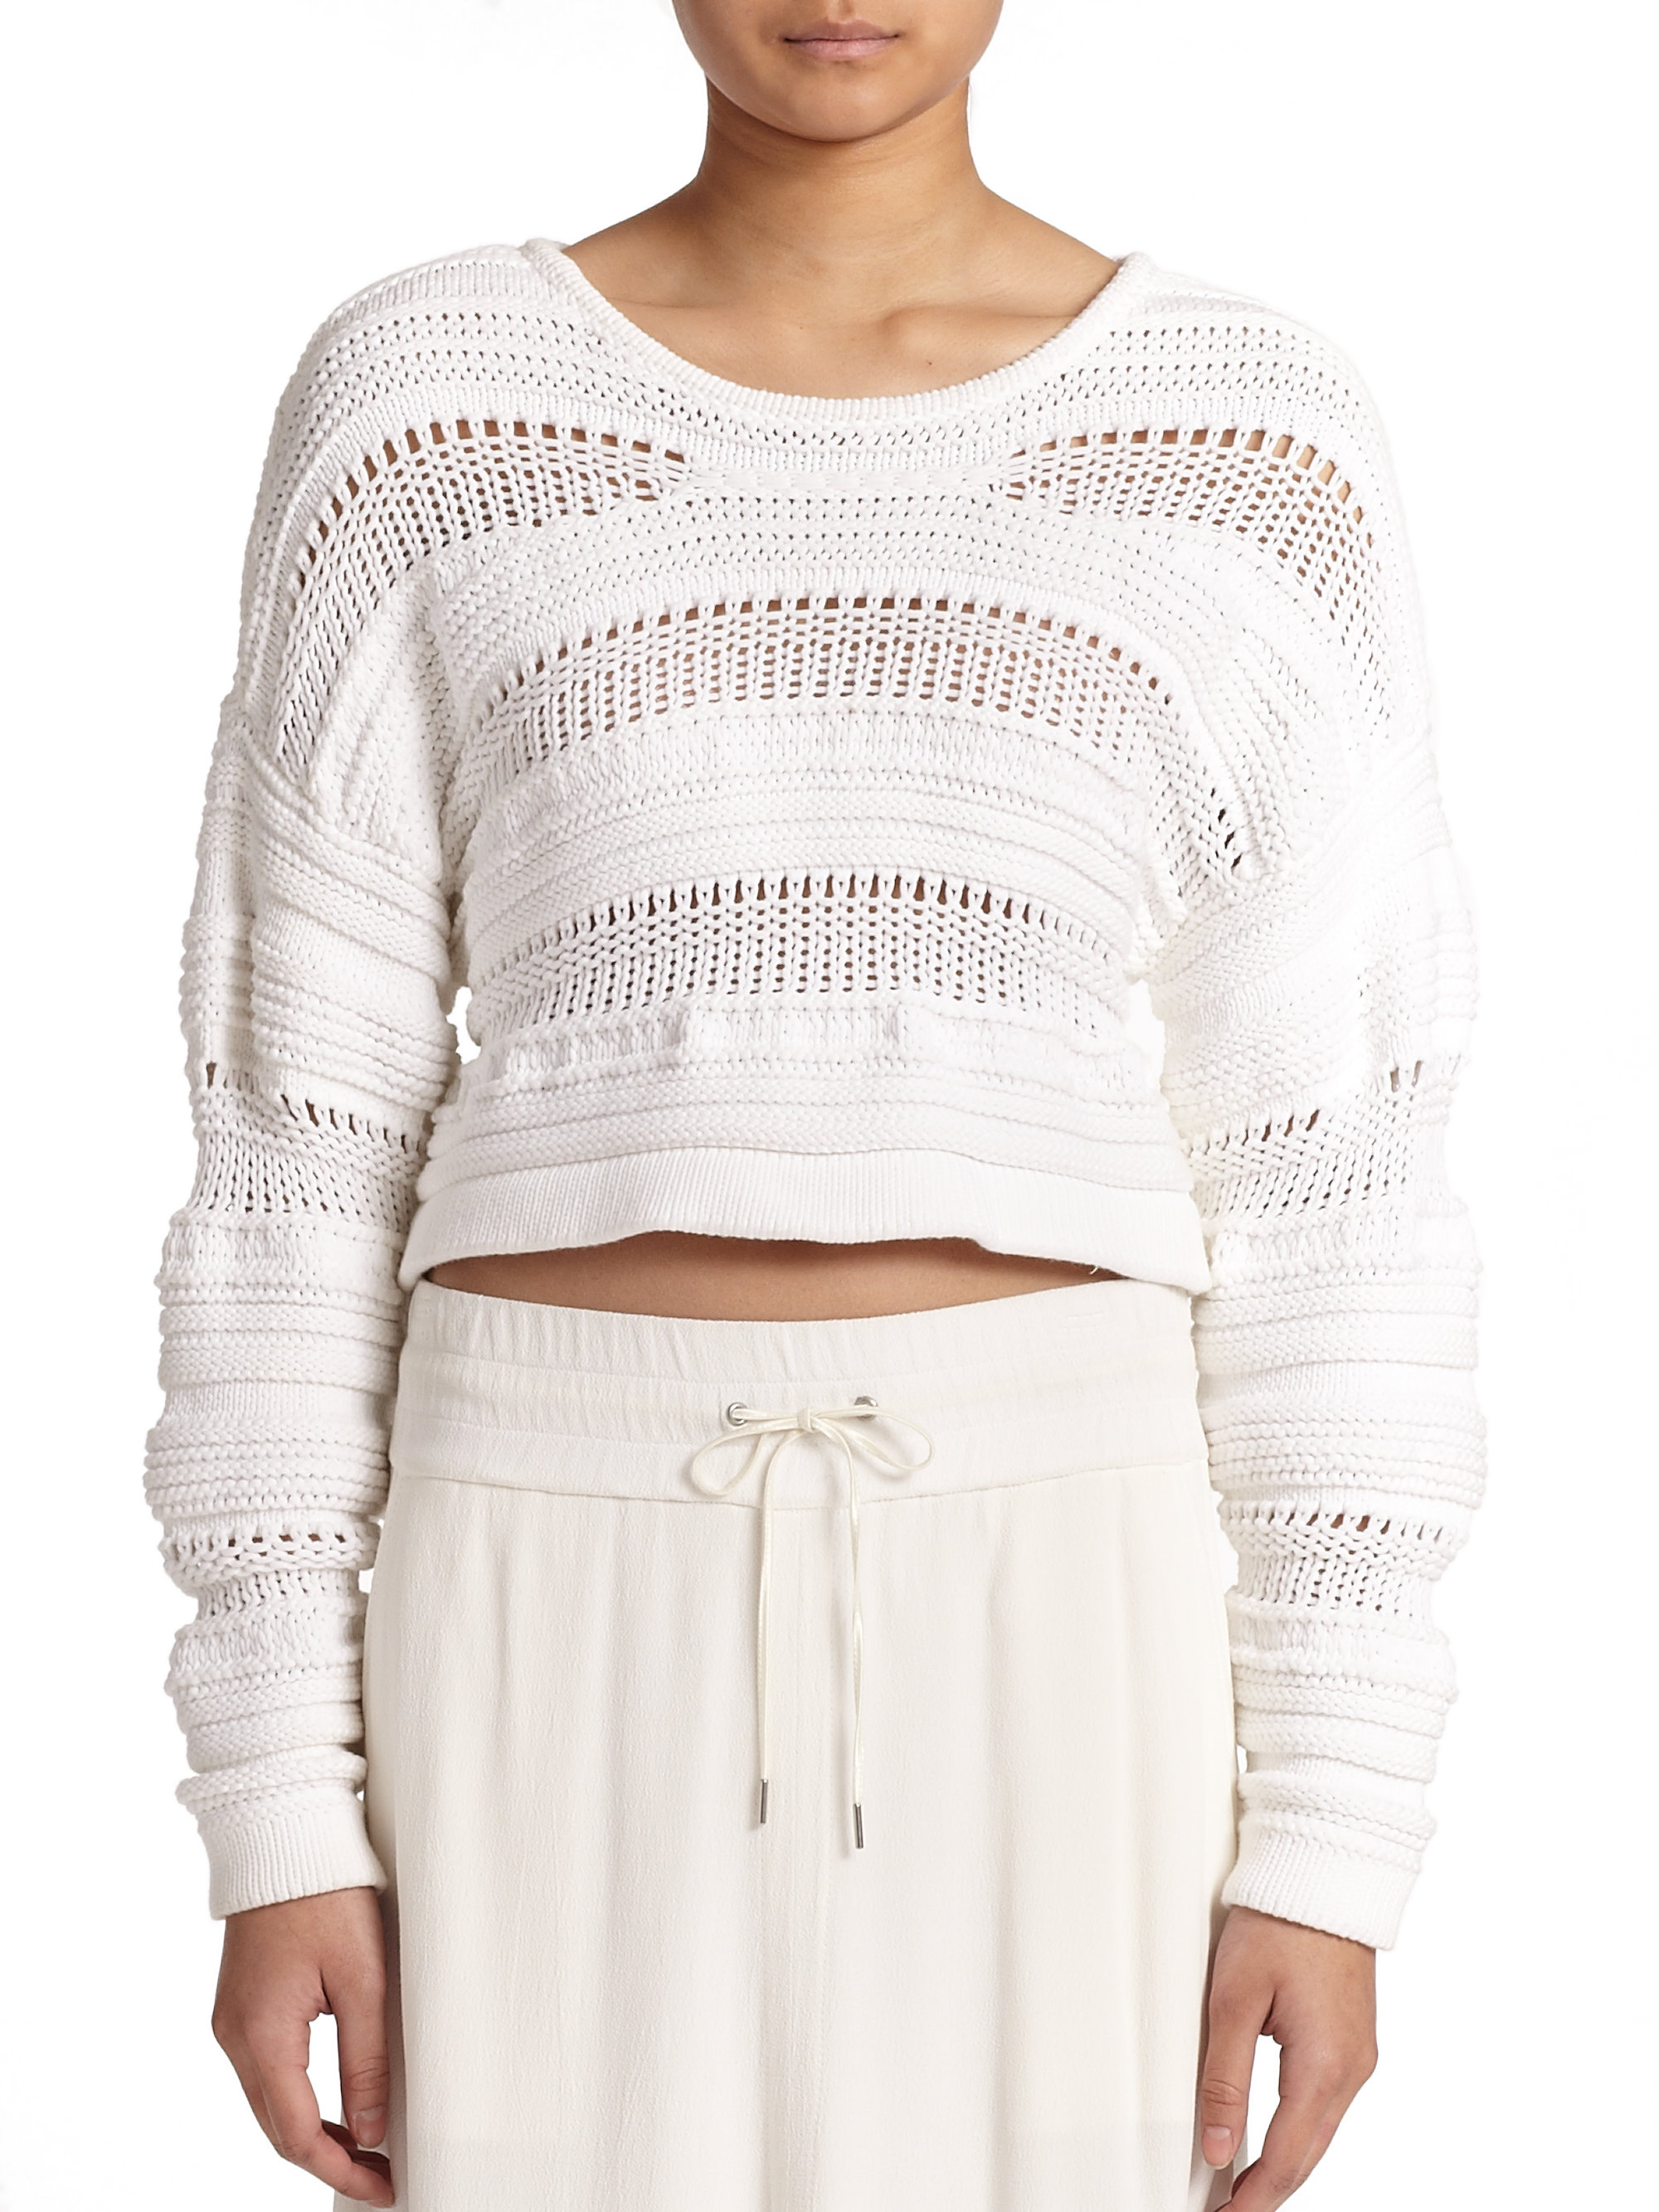 78dce755 Helmut Lang Open-knit Cropped Sweater in White - Lyst